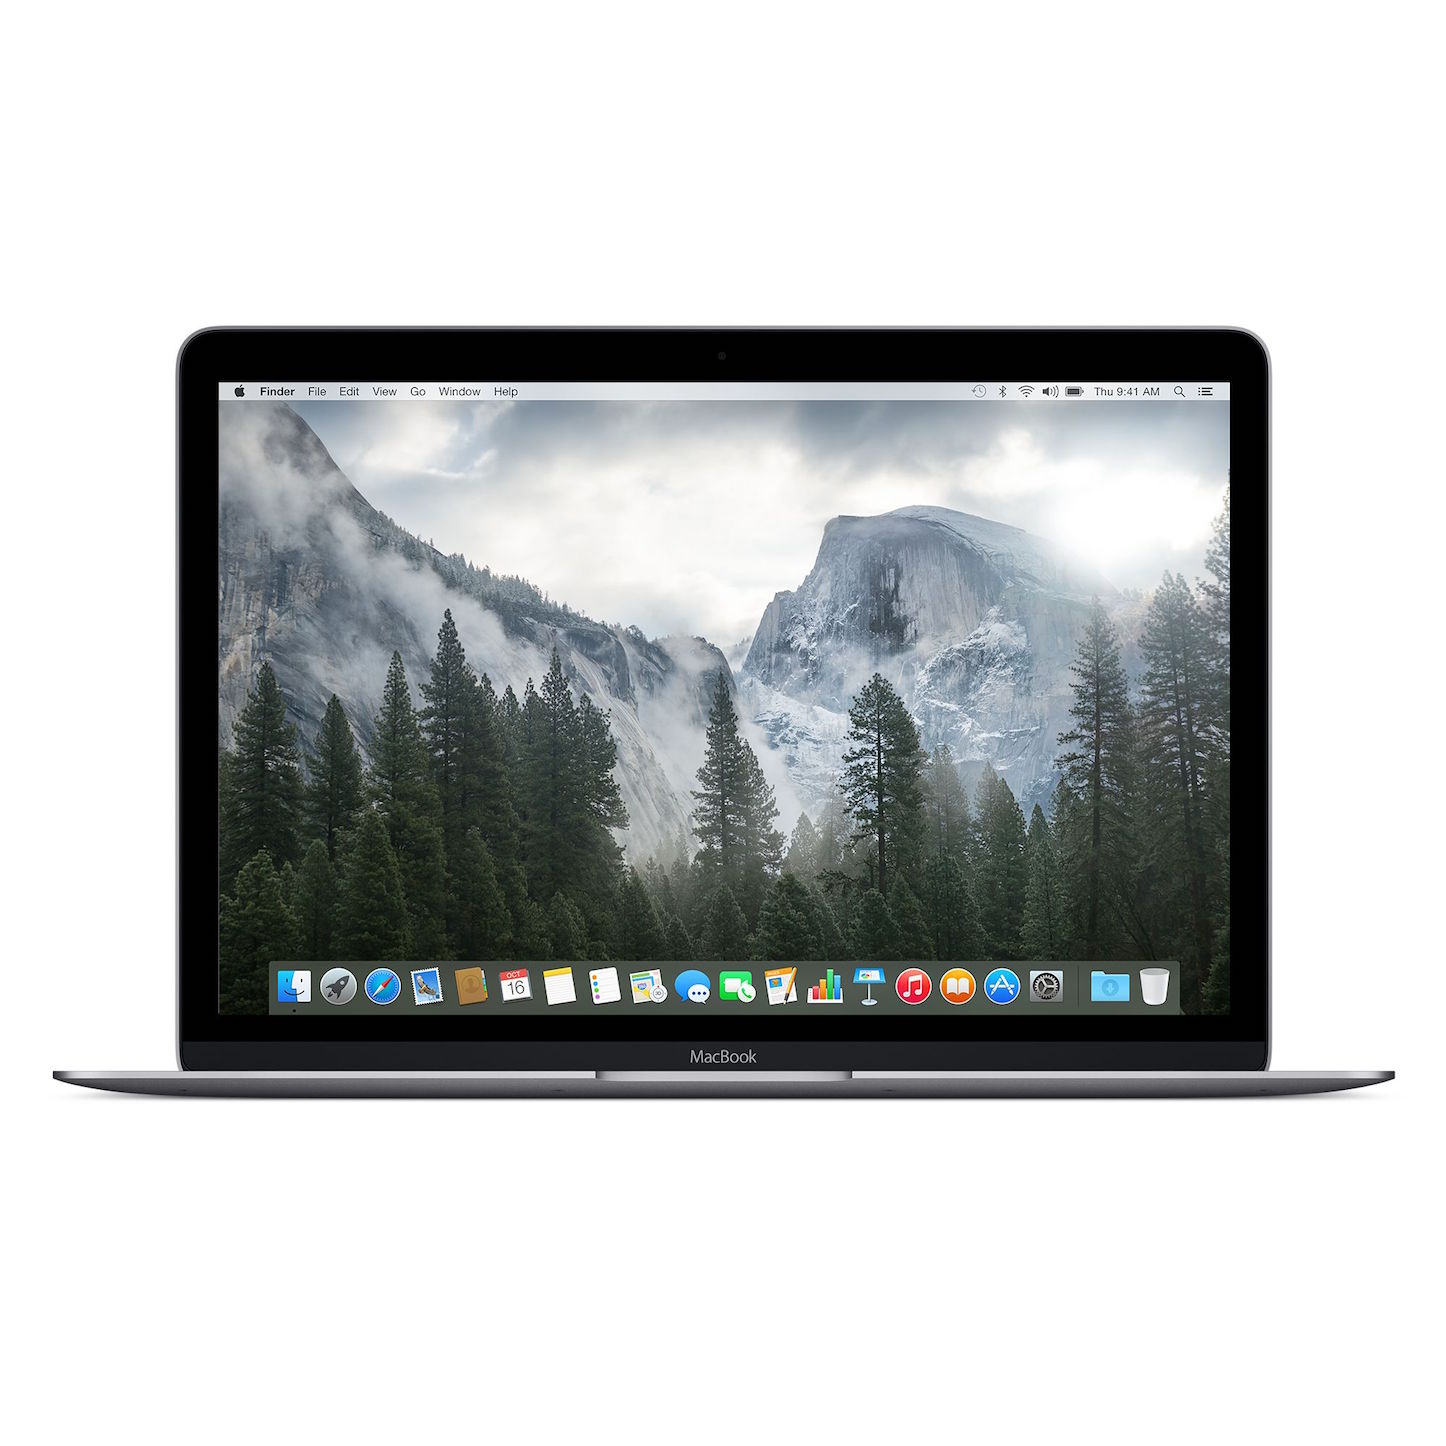 Refurb 2015 macbook spacegray gallery